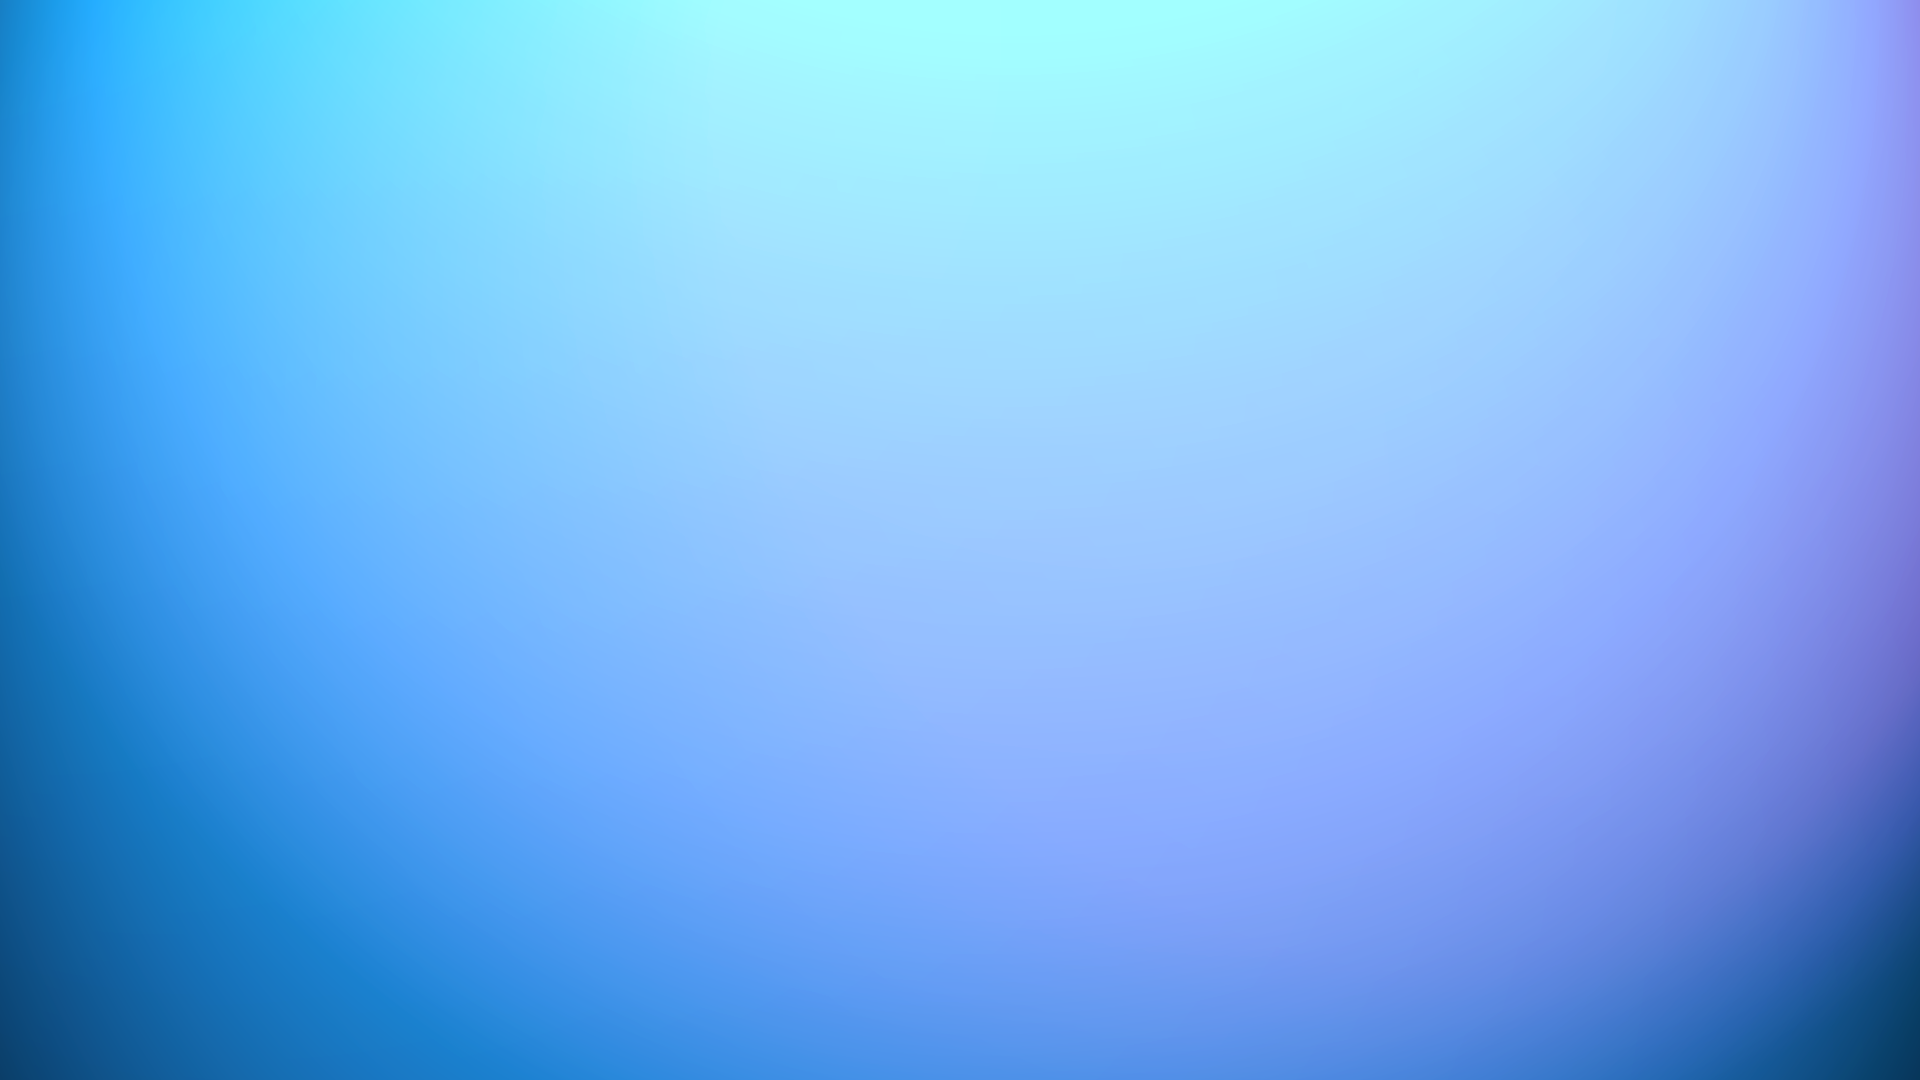 blue white gradient | blue gradient hd wallpaper 1920x1080 | colours